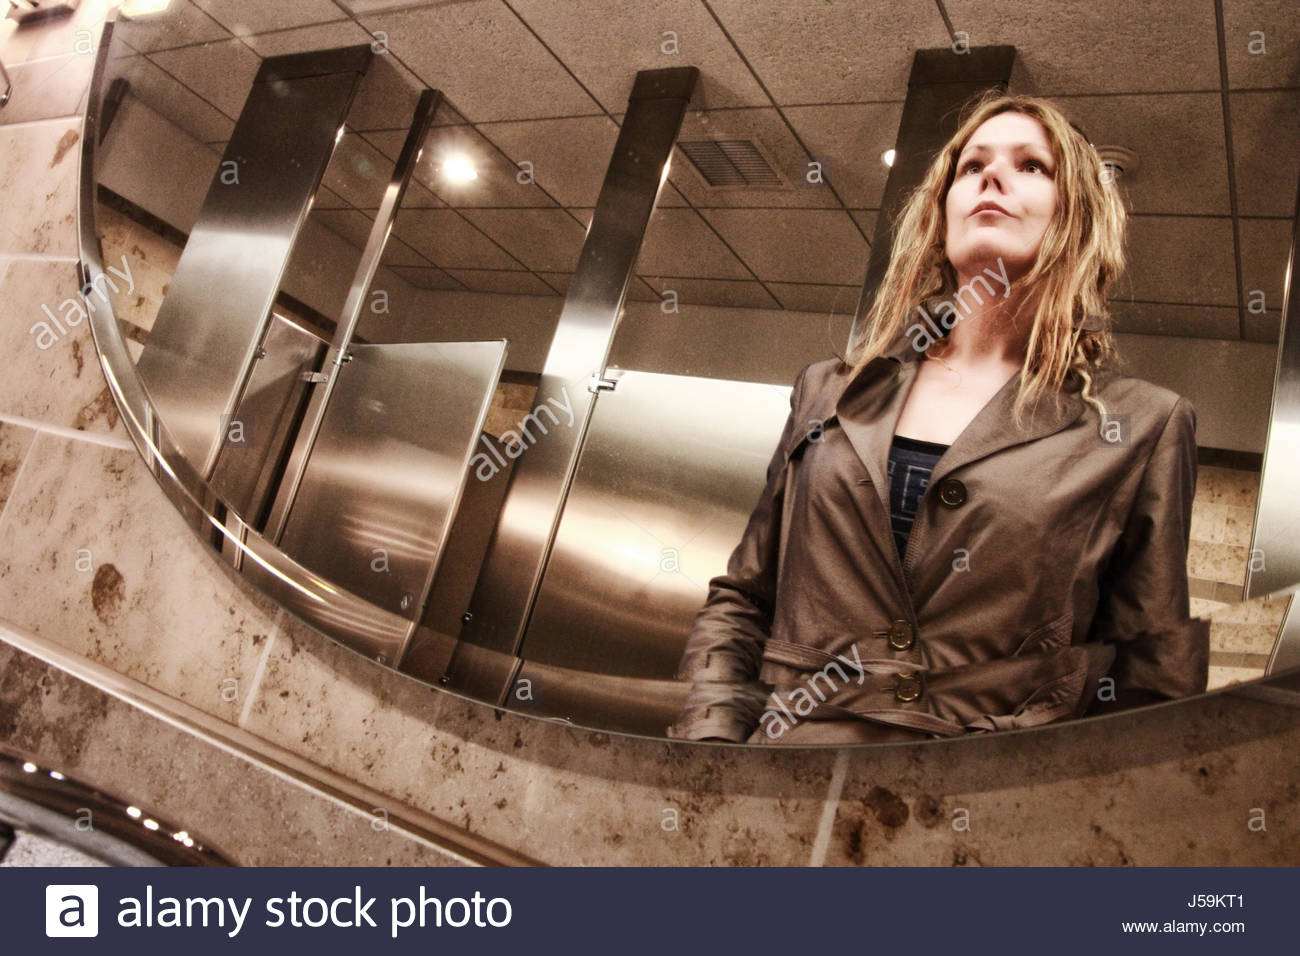 Woman looking at her reflection in the mirror in public washroom - Stock Image